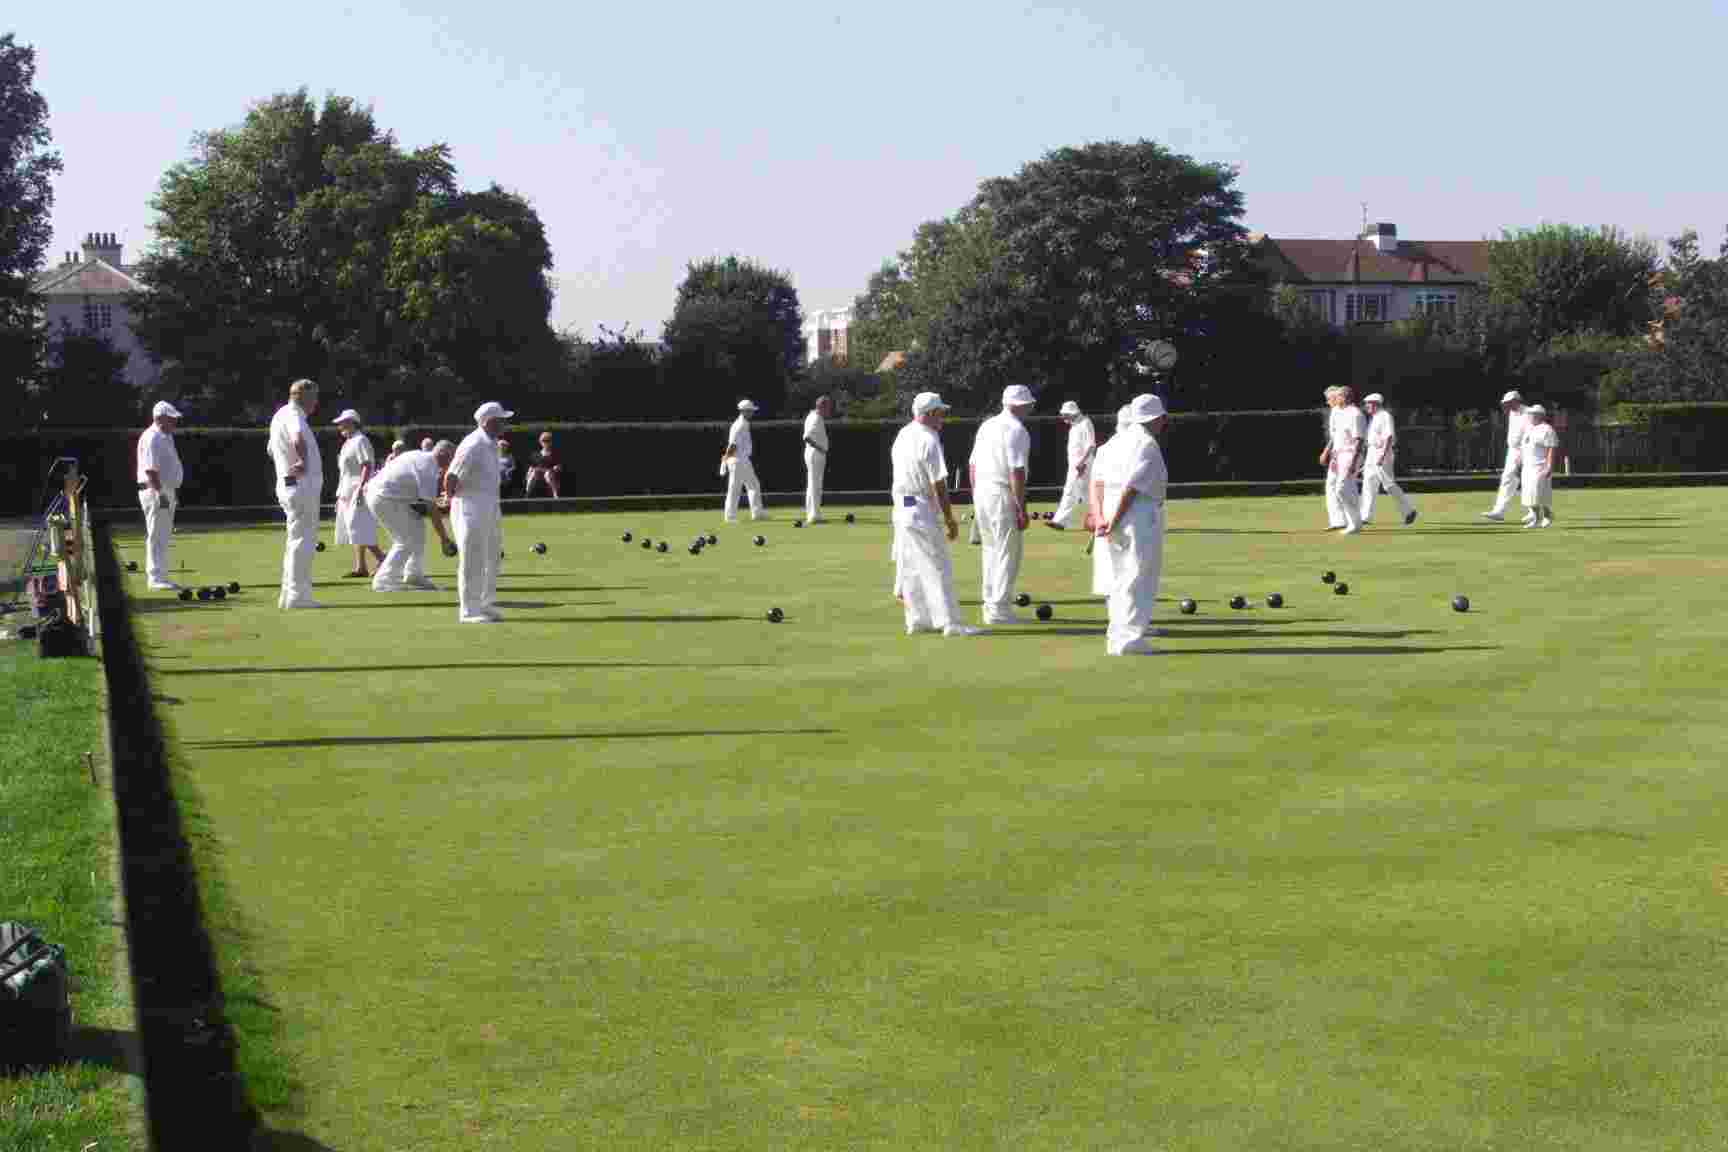 The future of bowls greens looks bleak in proposed council cuts